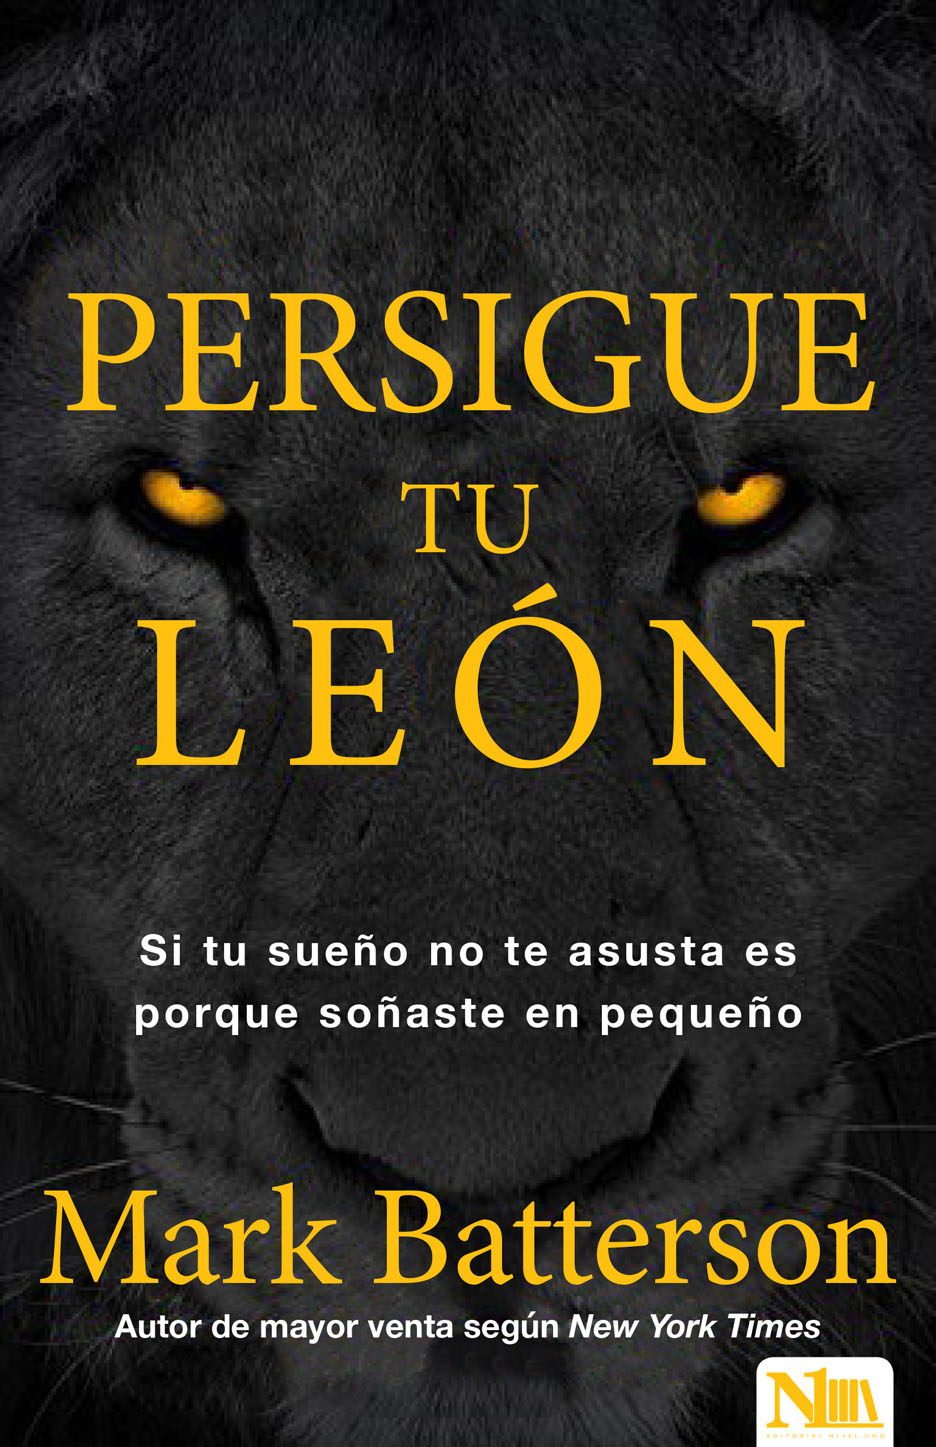 persigue-tu-leon-nuevo-libro-de-mark-betterson